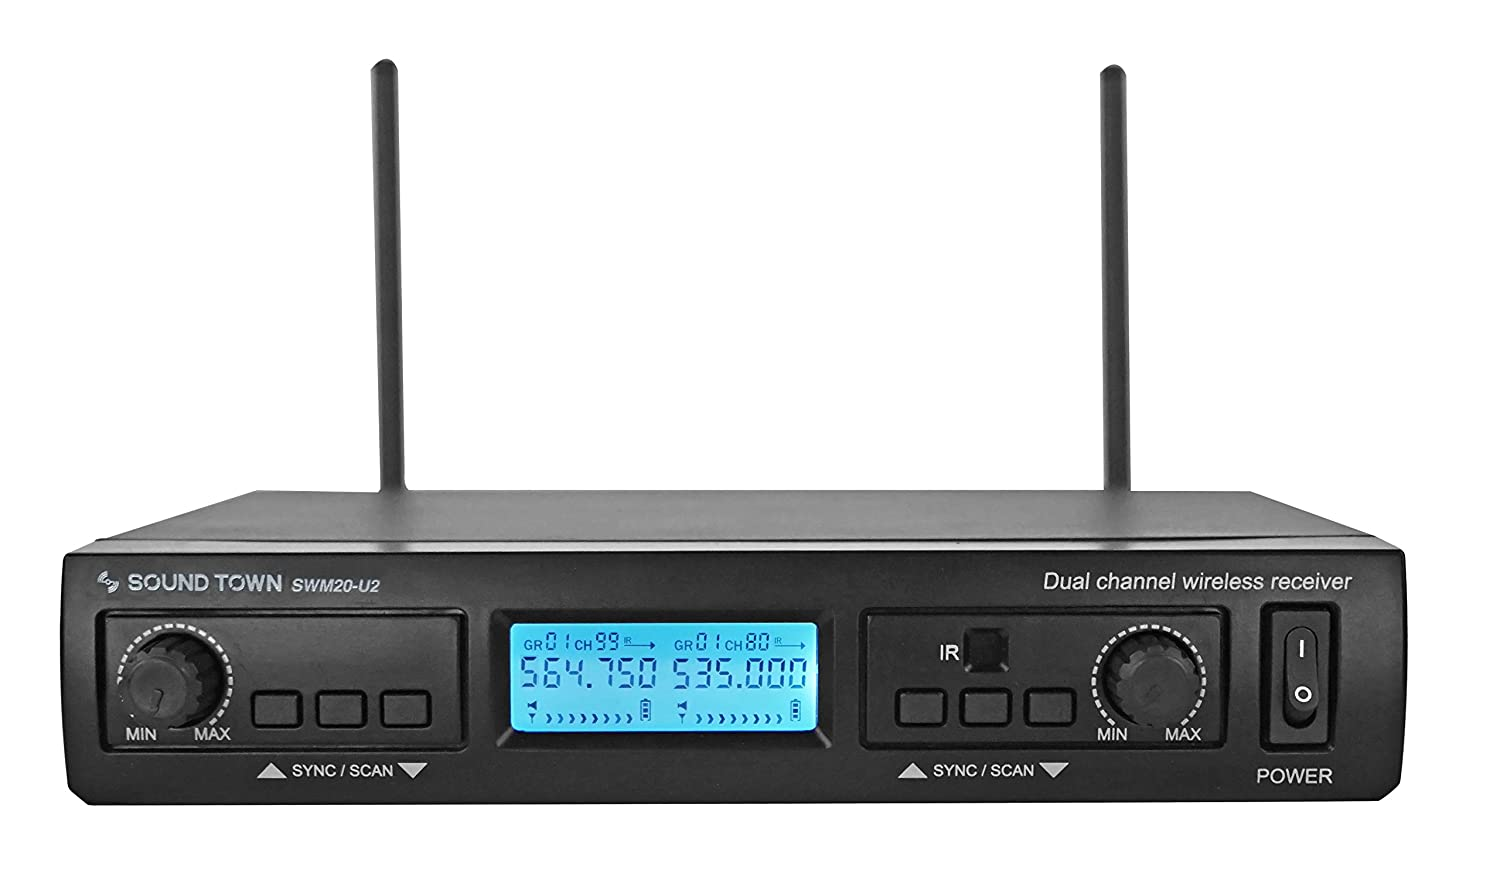 Sound Town 200-Channel Professional UHF Wireless Microphone System with 2 Handheld Mics, for Church, Business Meeting, Outdoor Wedding and Karaoke (SWM20-U2HH) 4332801098